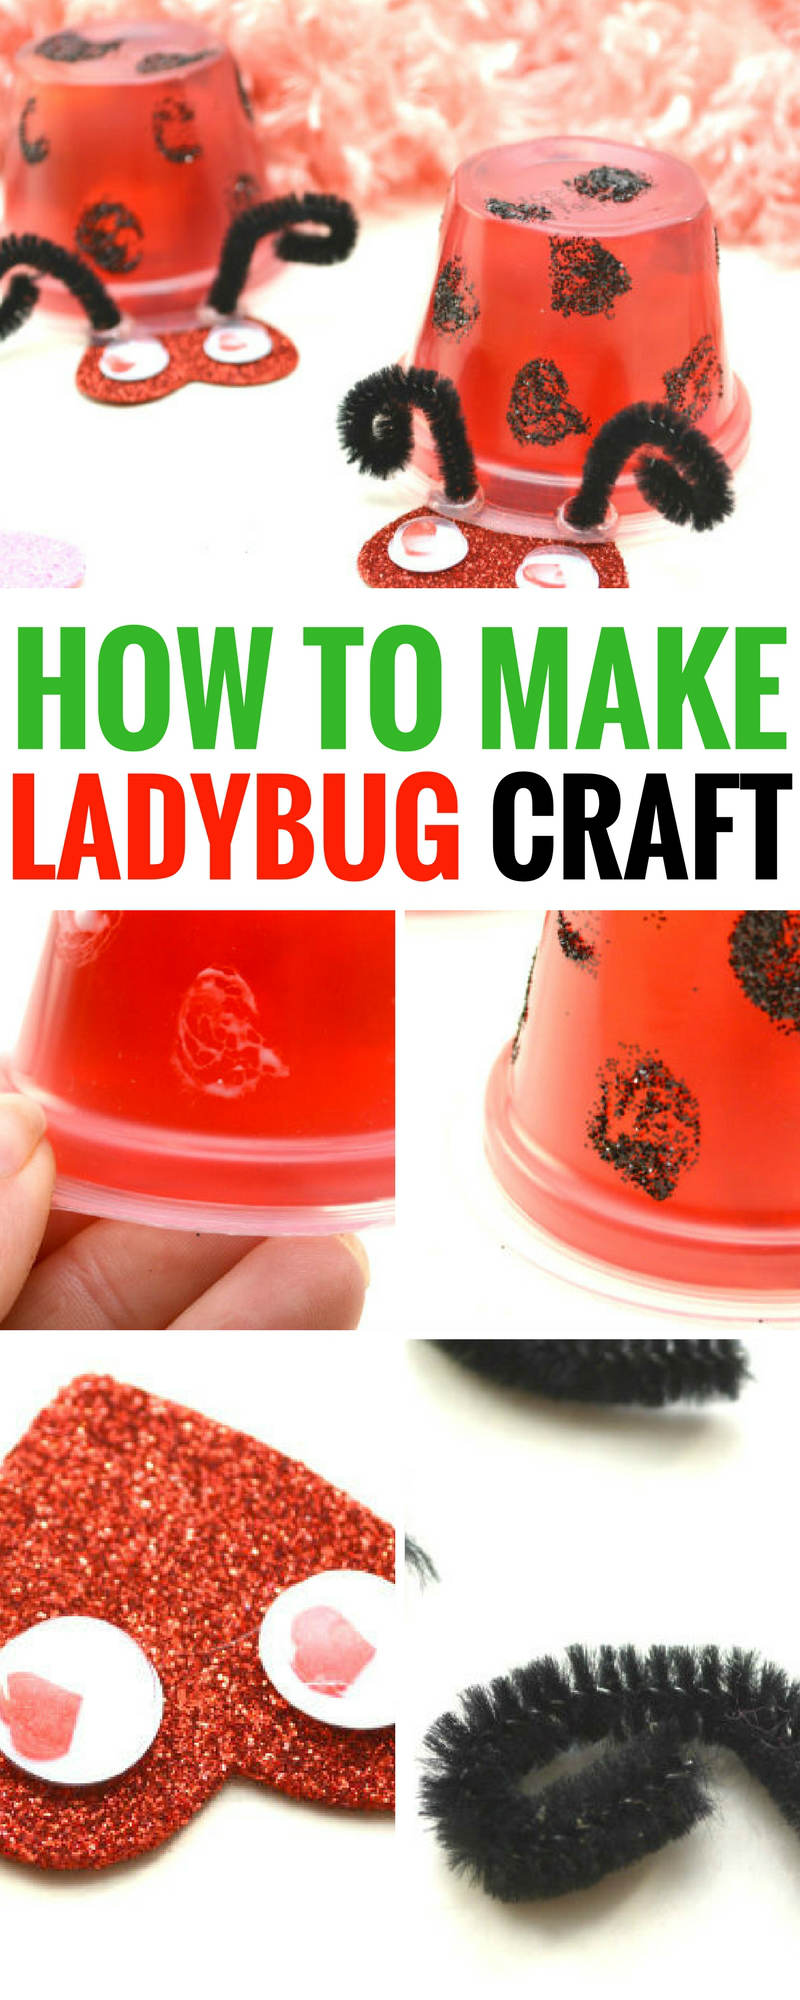 How to make a ladybug craft. This is so easy, comes with complete directions, and it's a blast to DIY yourself, or with the kiddos | ladybug crafts DIY | how to make a ladybug craft | easy ladybug craft | simple ladybug craft #craft #kids #ladybug #crafts for kids ladybug craft with googly eyes